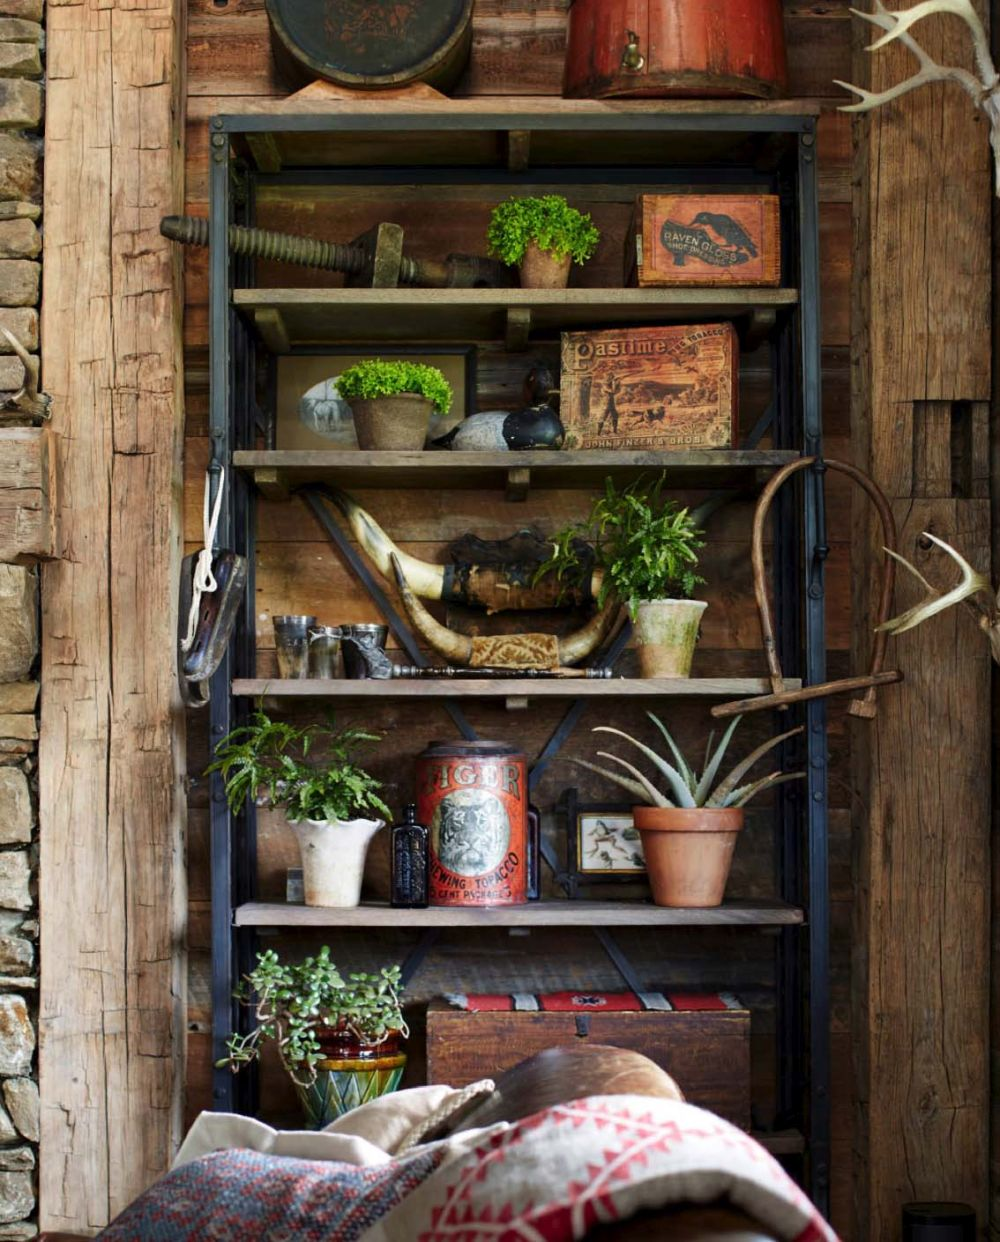 Vintage furniture and antiques are spread throughout the house, creating an authentic rustic interior design